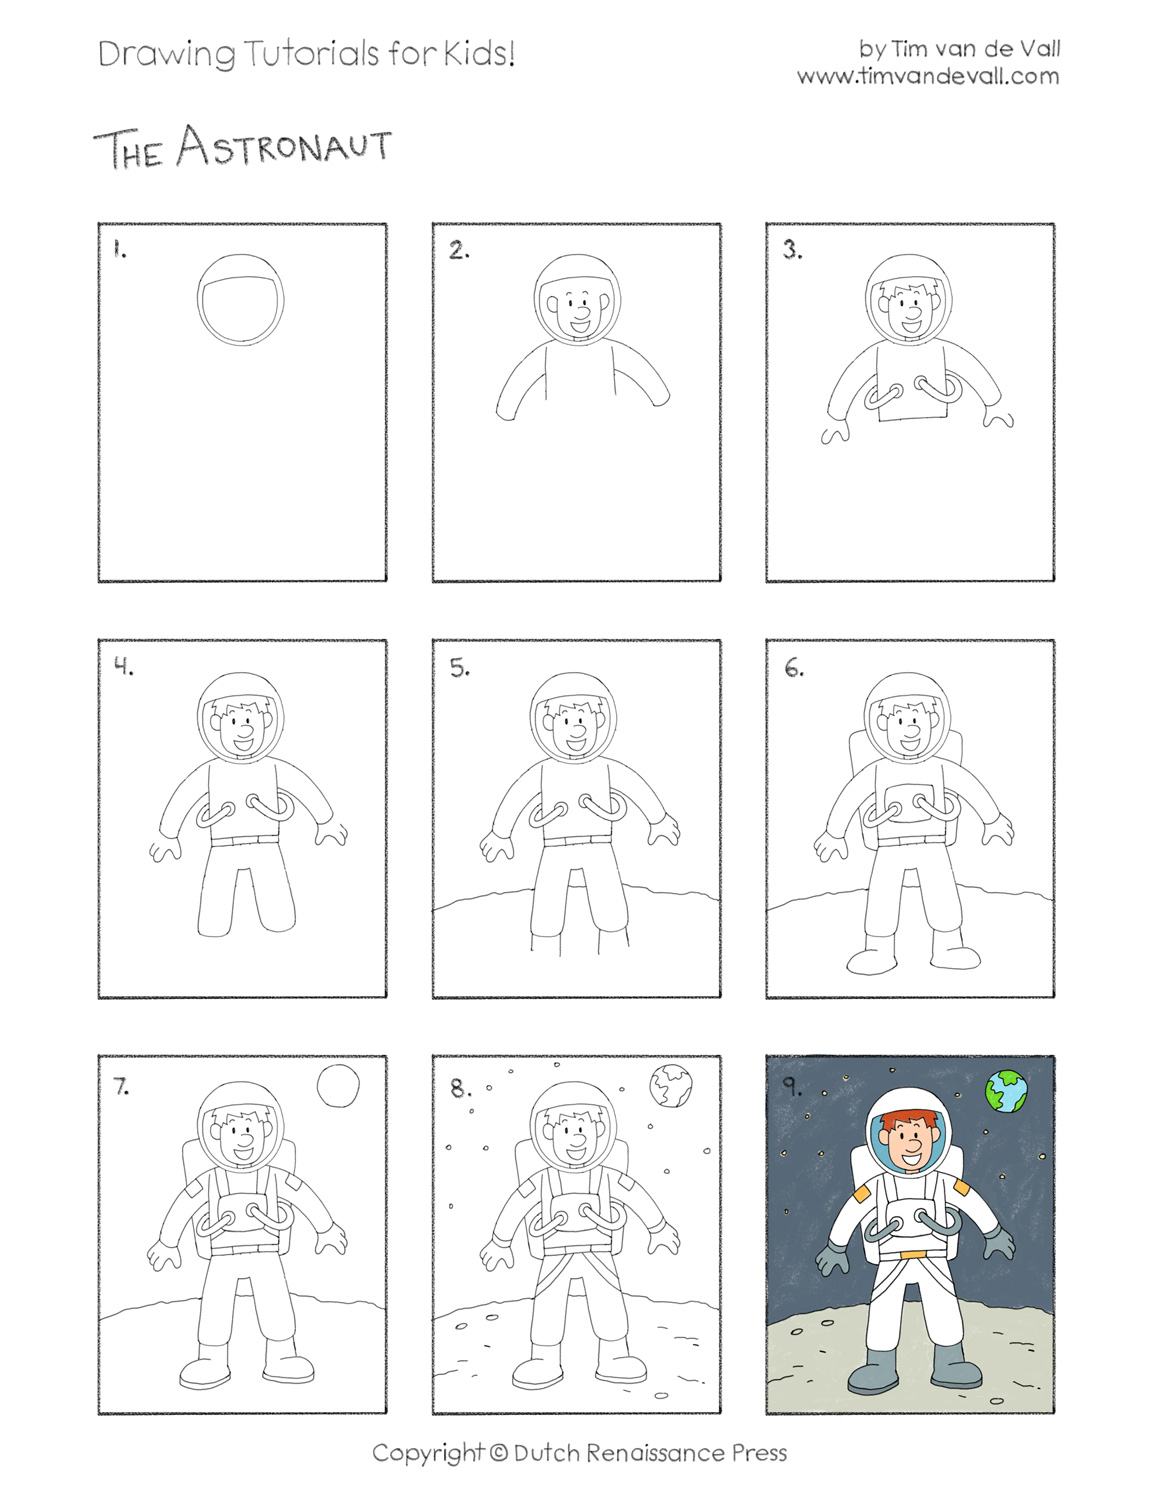 Easy Drawing Tutorials for Kids - Astronaut